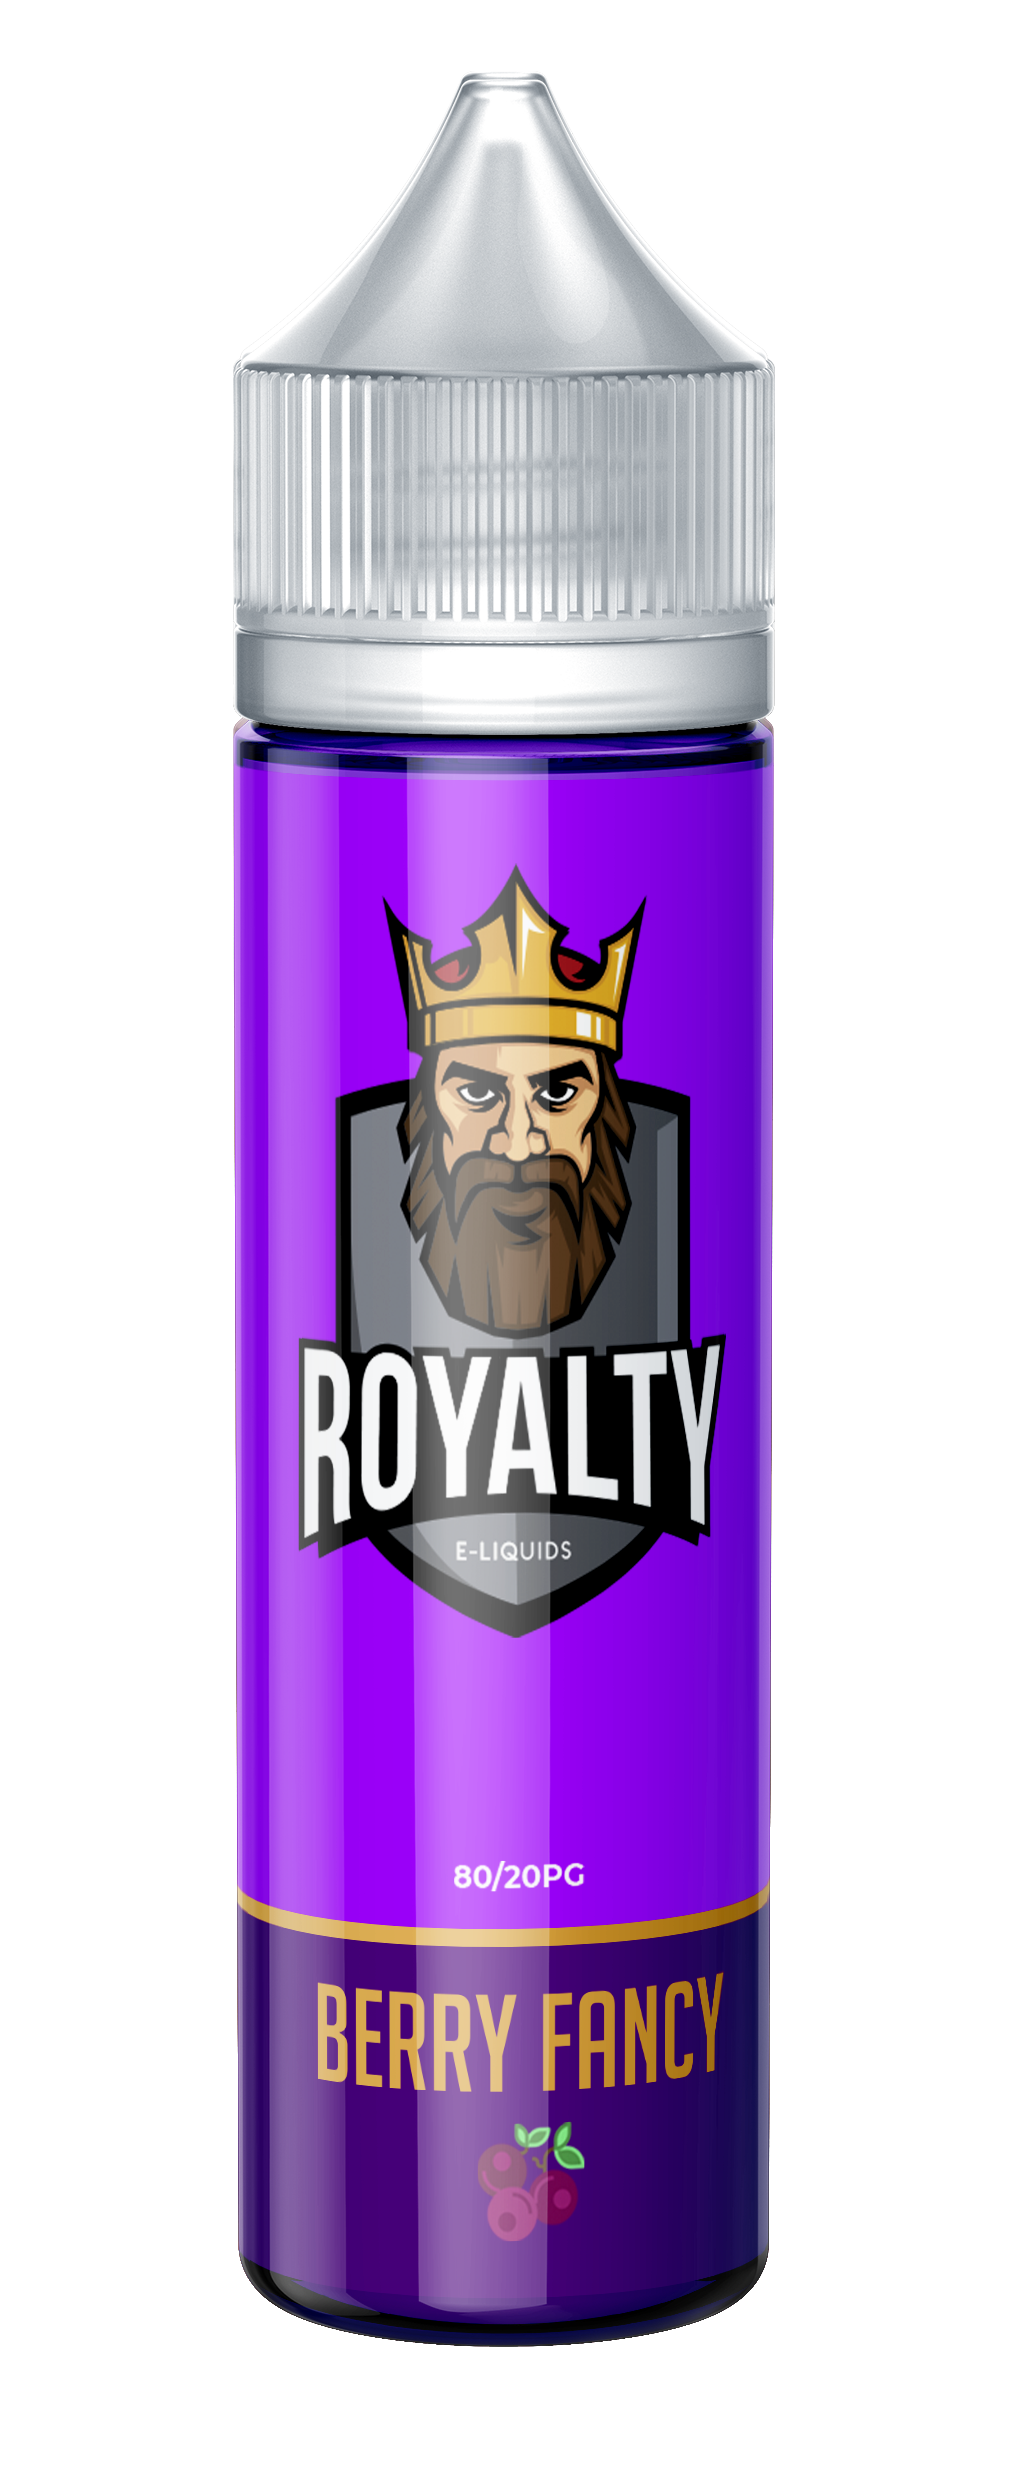 Berry Fancy Royalty E-liquids